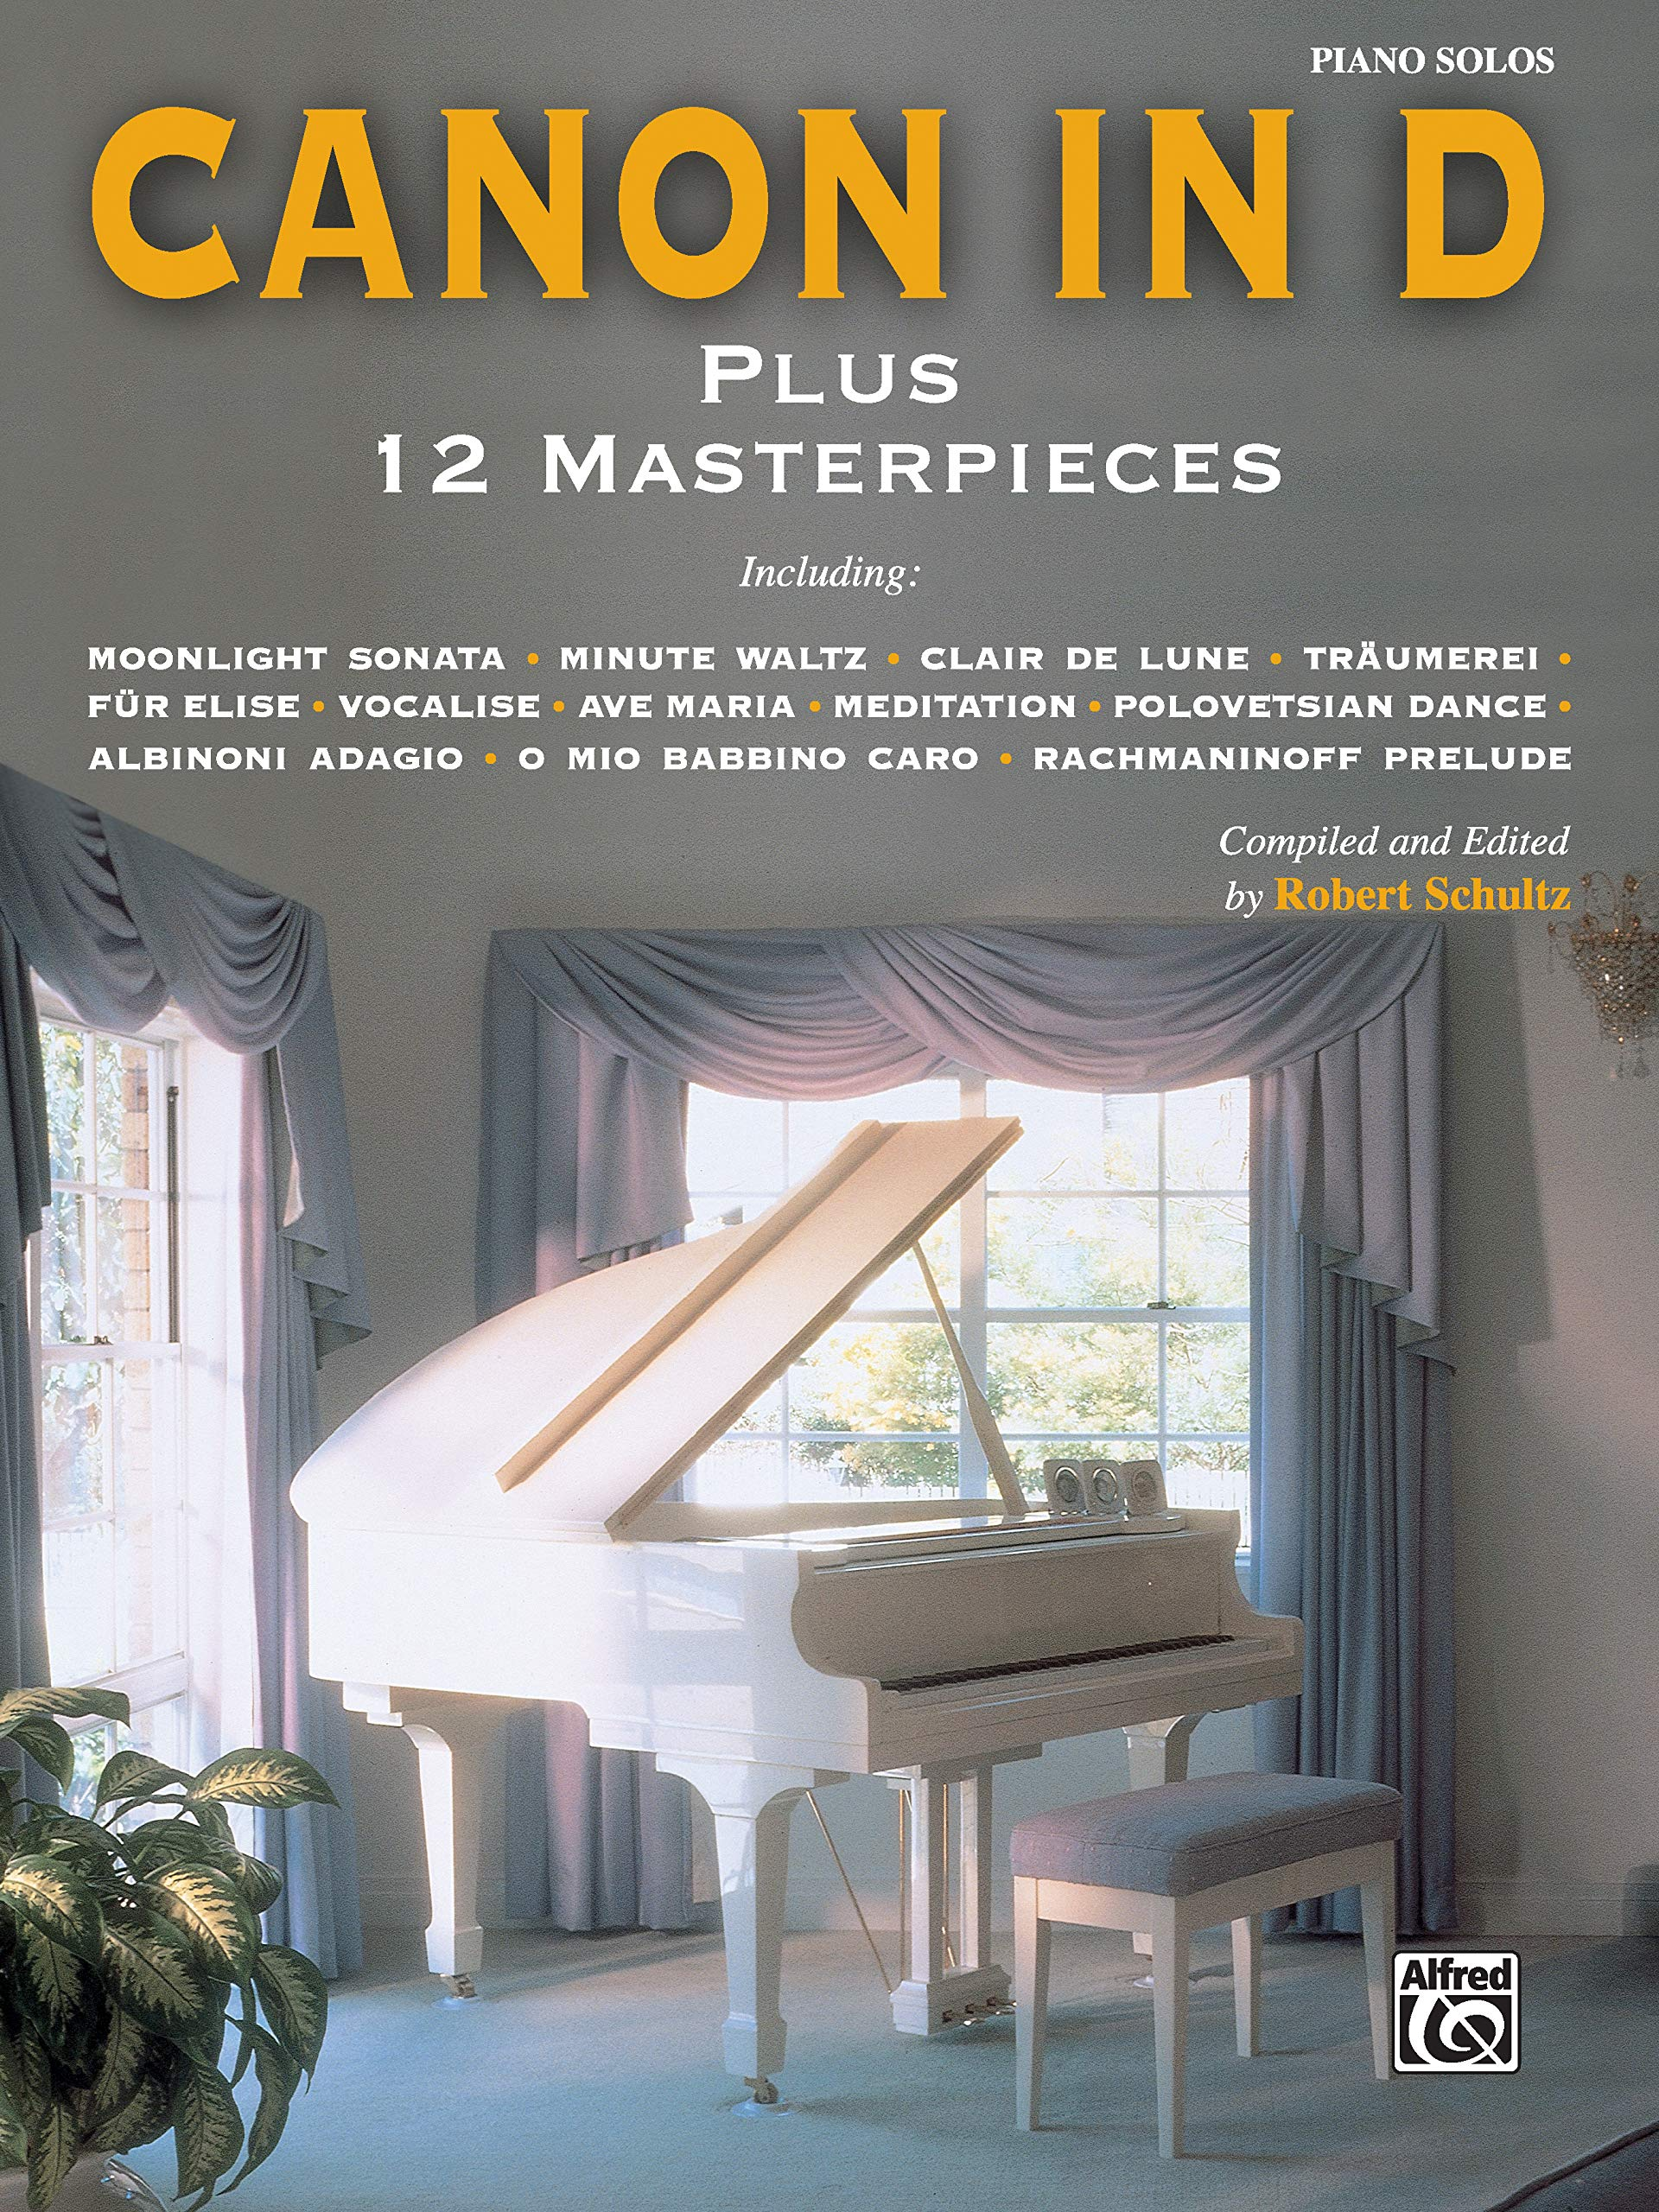 Canon Plus 12 Masterpieces product image